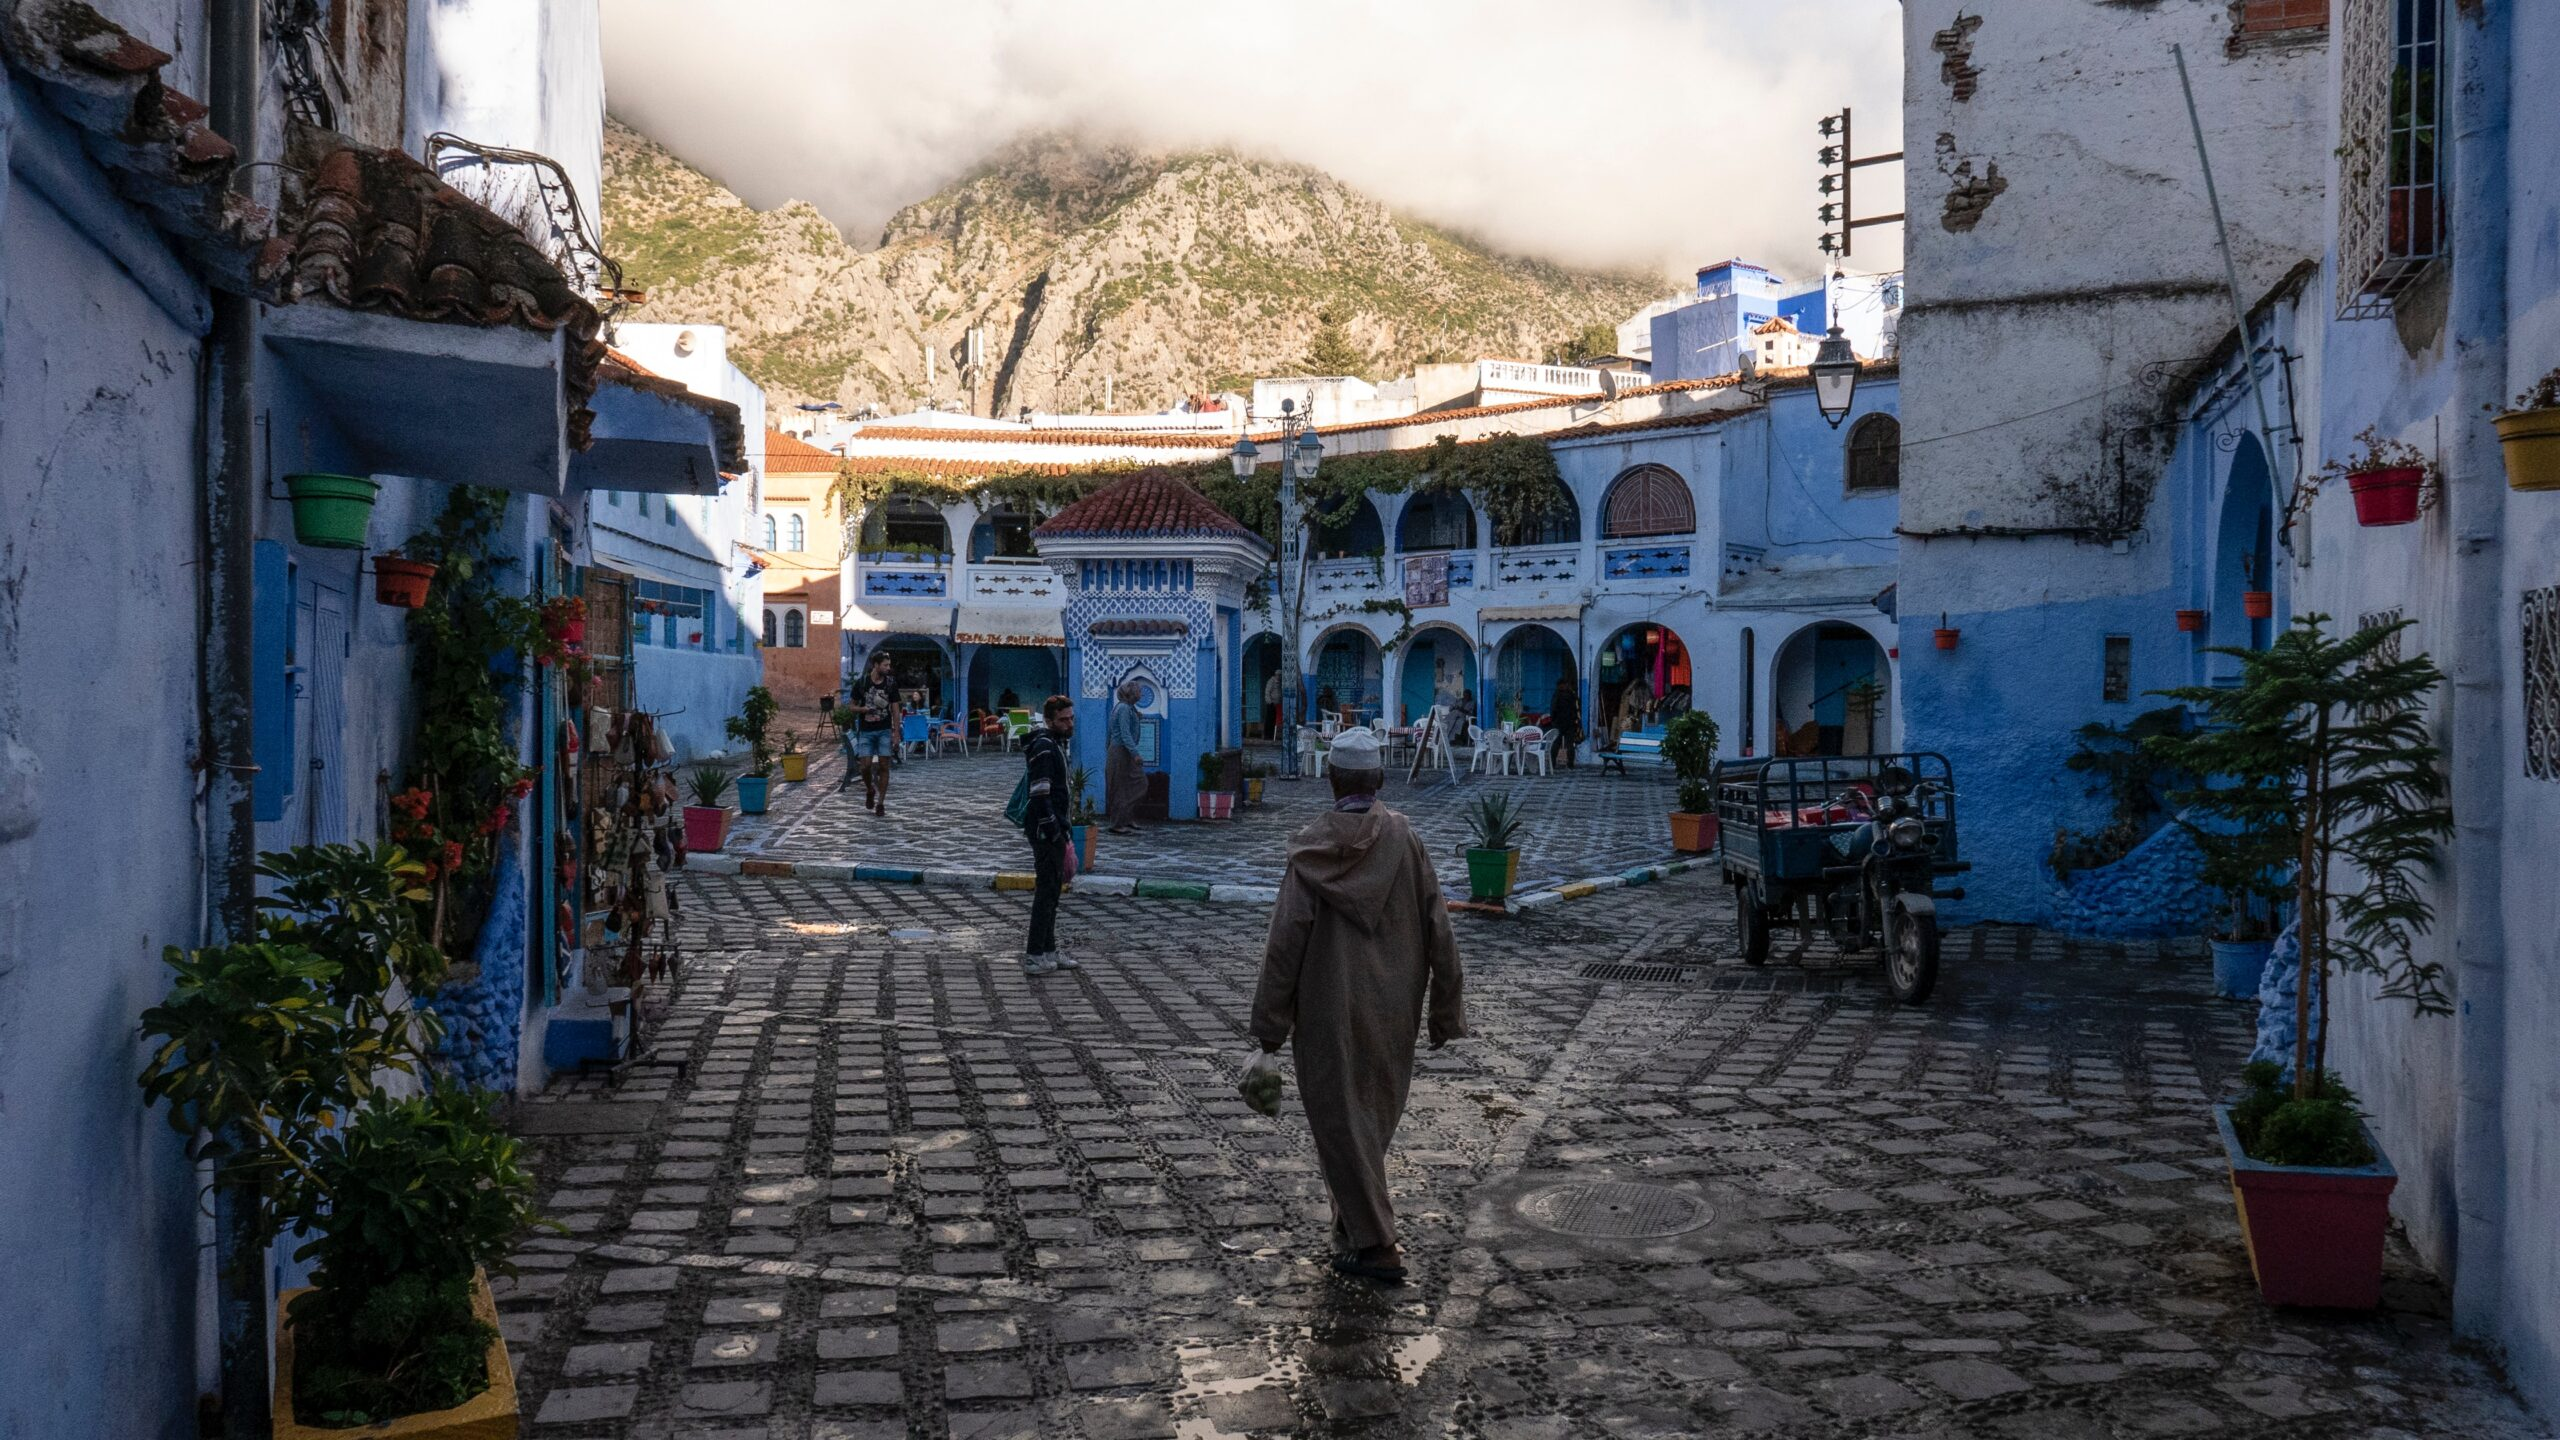 Enjoy A Day Of Food Tasting On Our Moroccan Food Tour In Chefchaouen